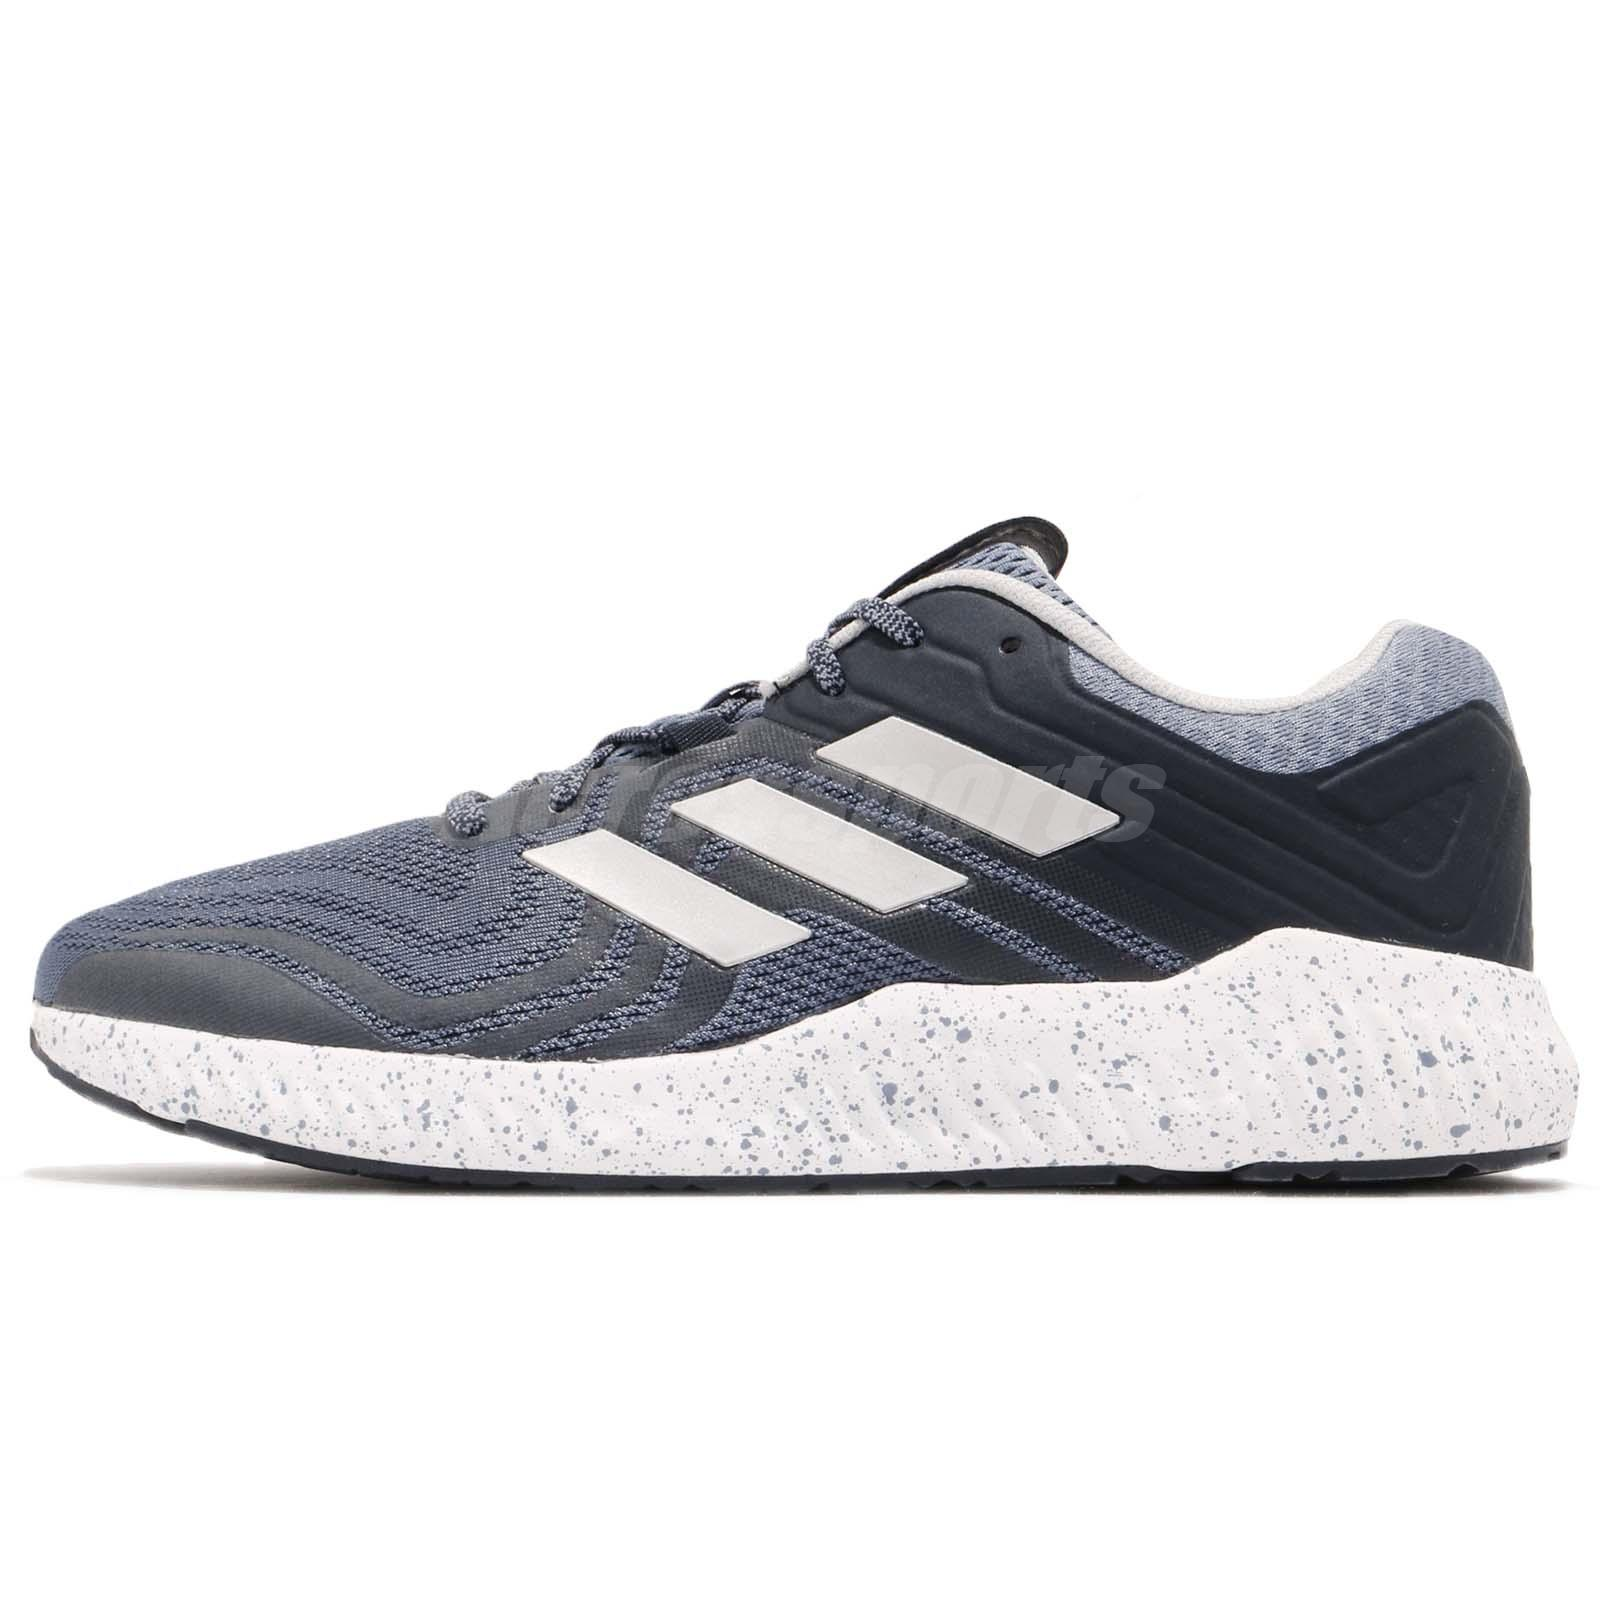 separation shoes 64fb8 74f00 adidas Aerobounce ST 2 Blue Silver Orange Men Running Shoes Sneakers AQ0550